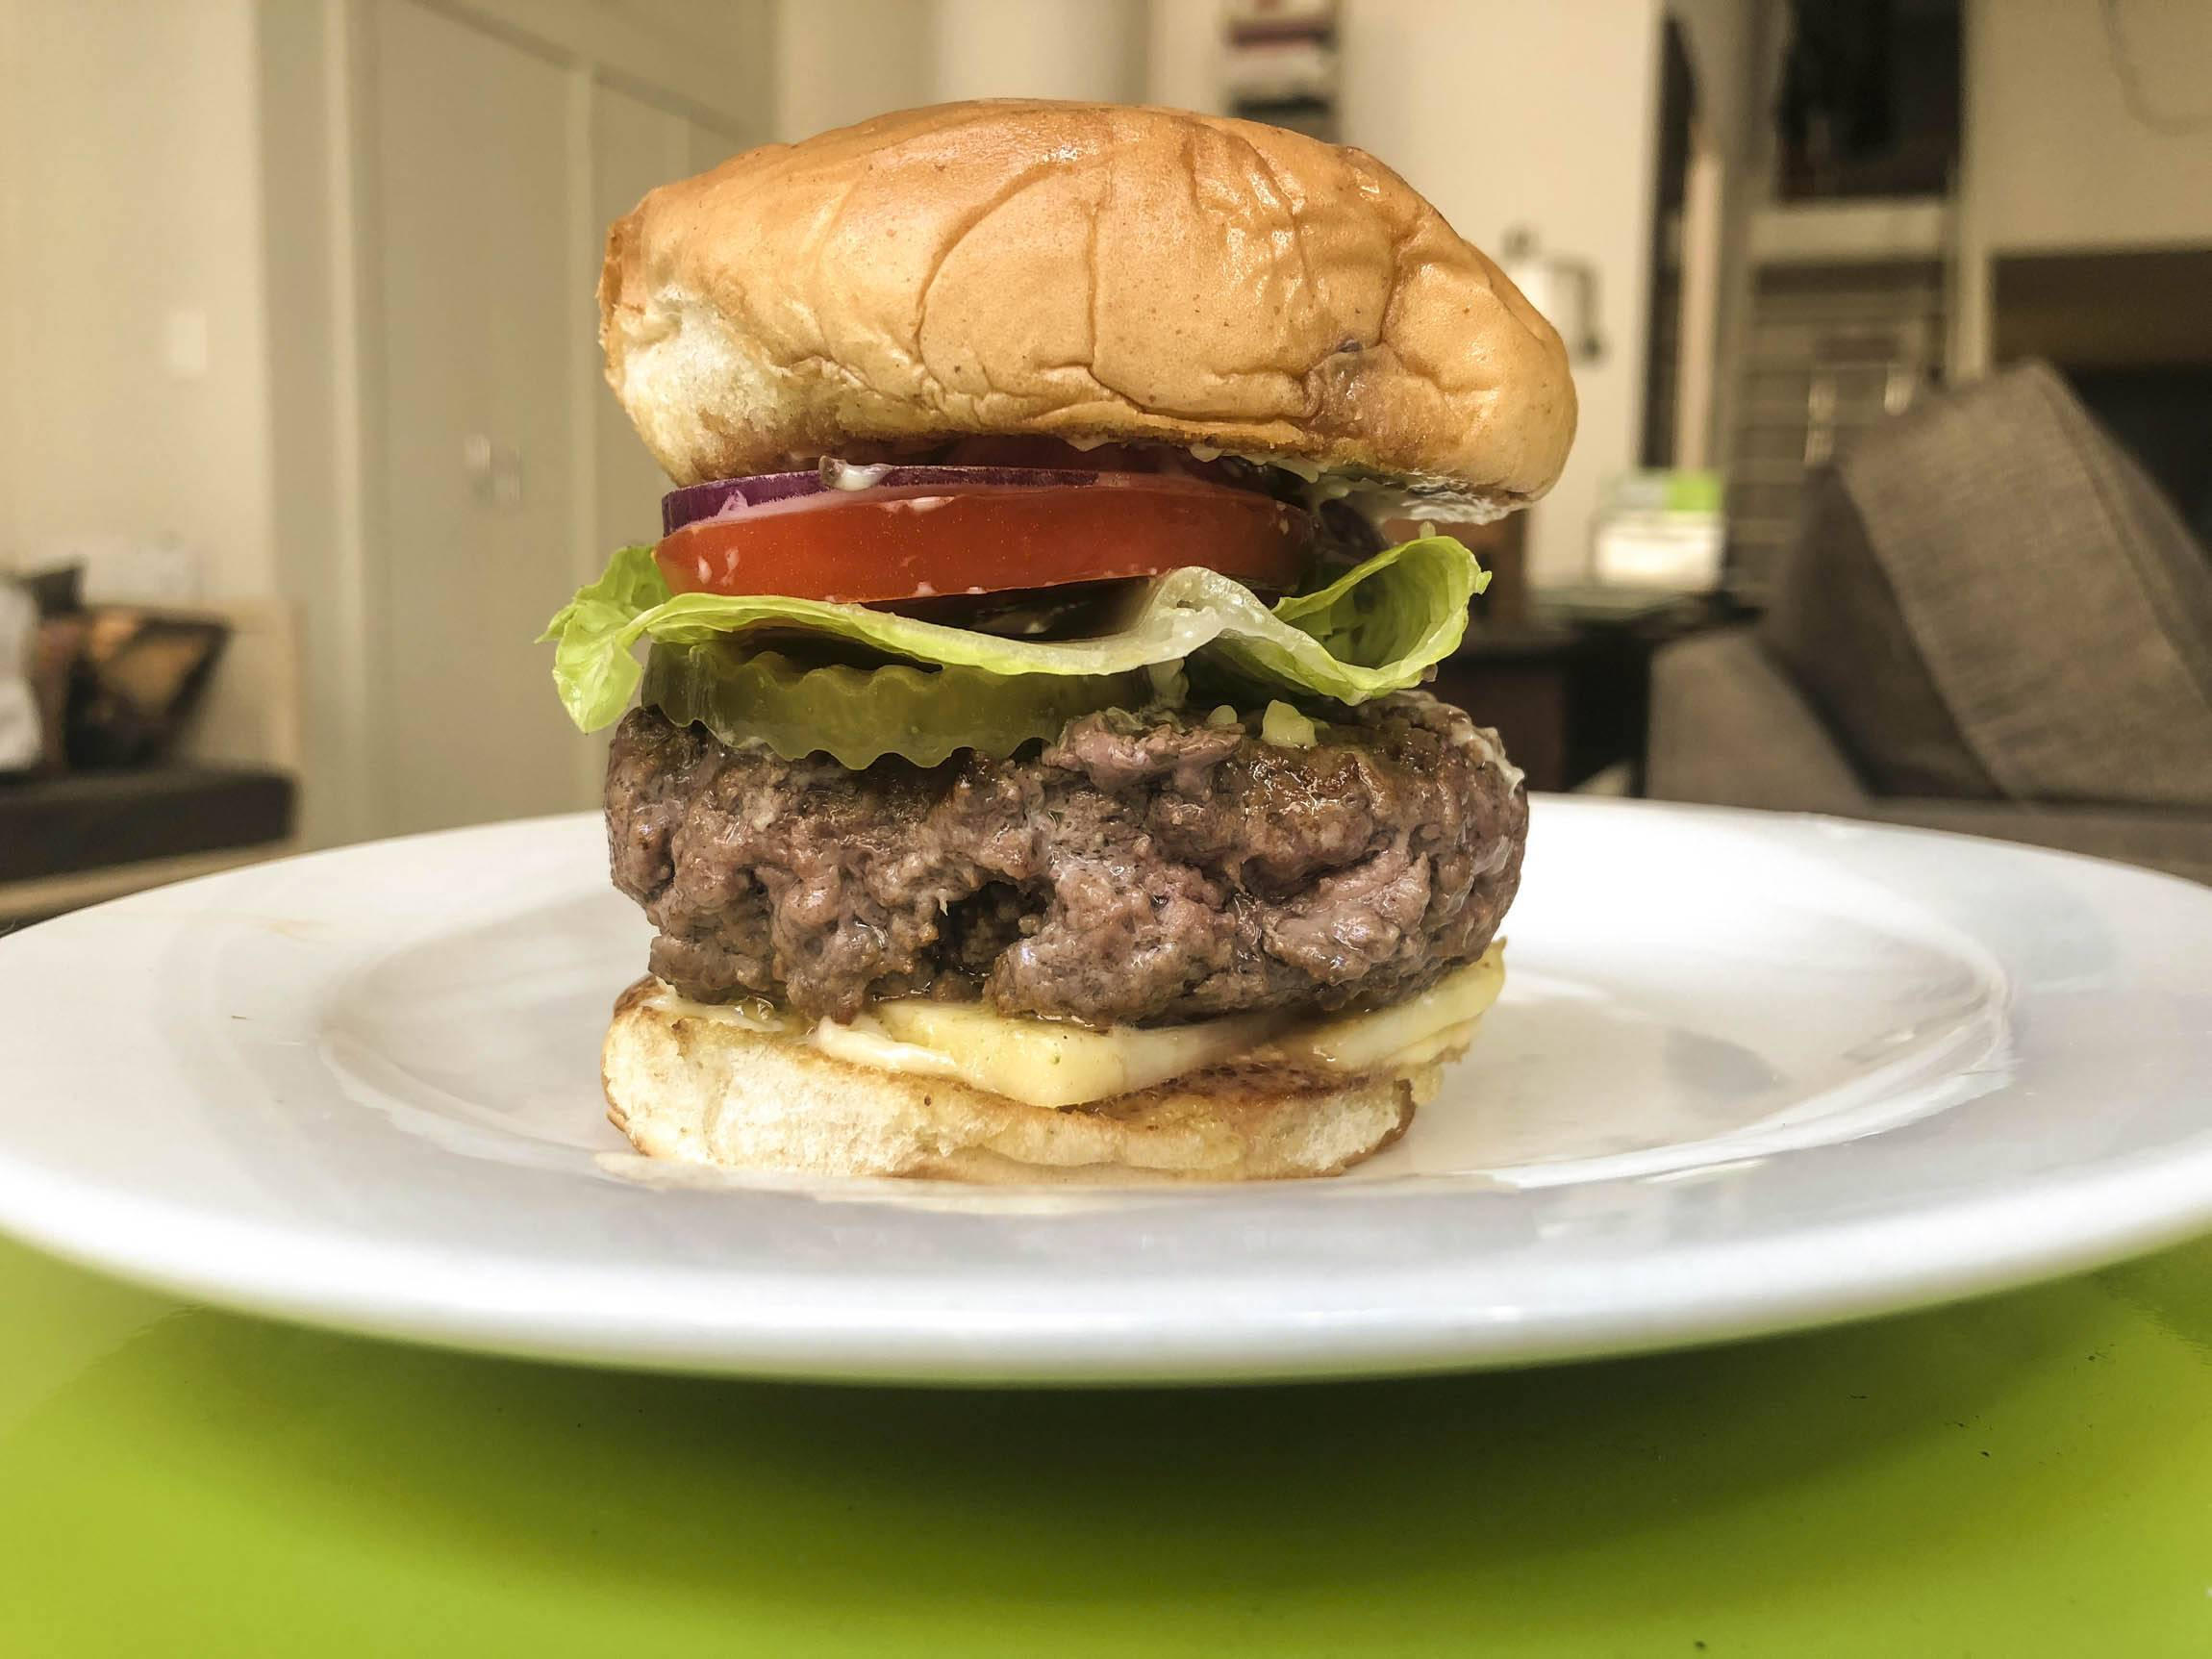 The author made her own version of the Kronnerburger, starring the cheese mayo.